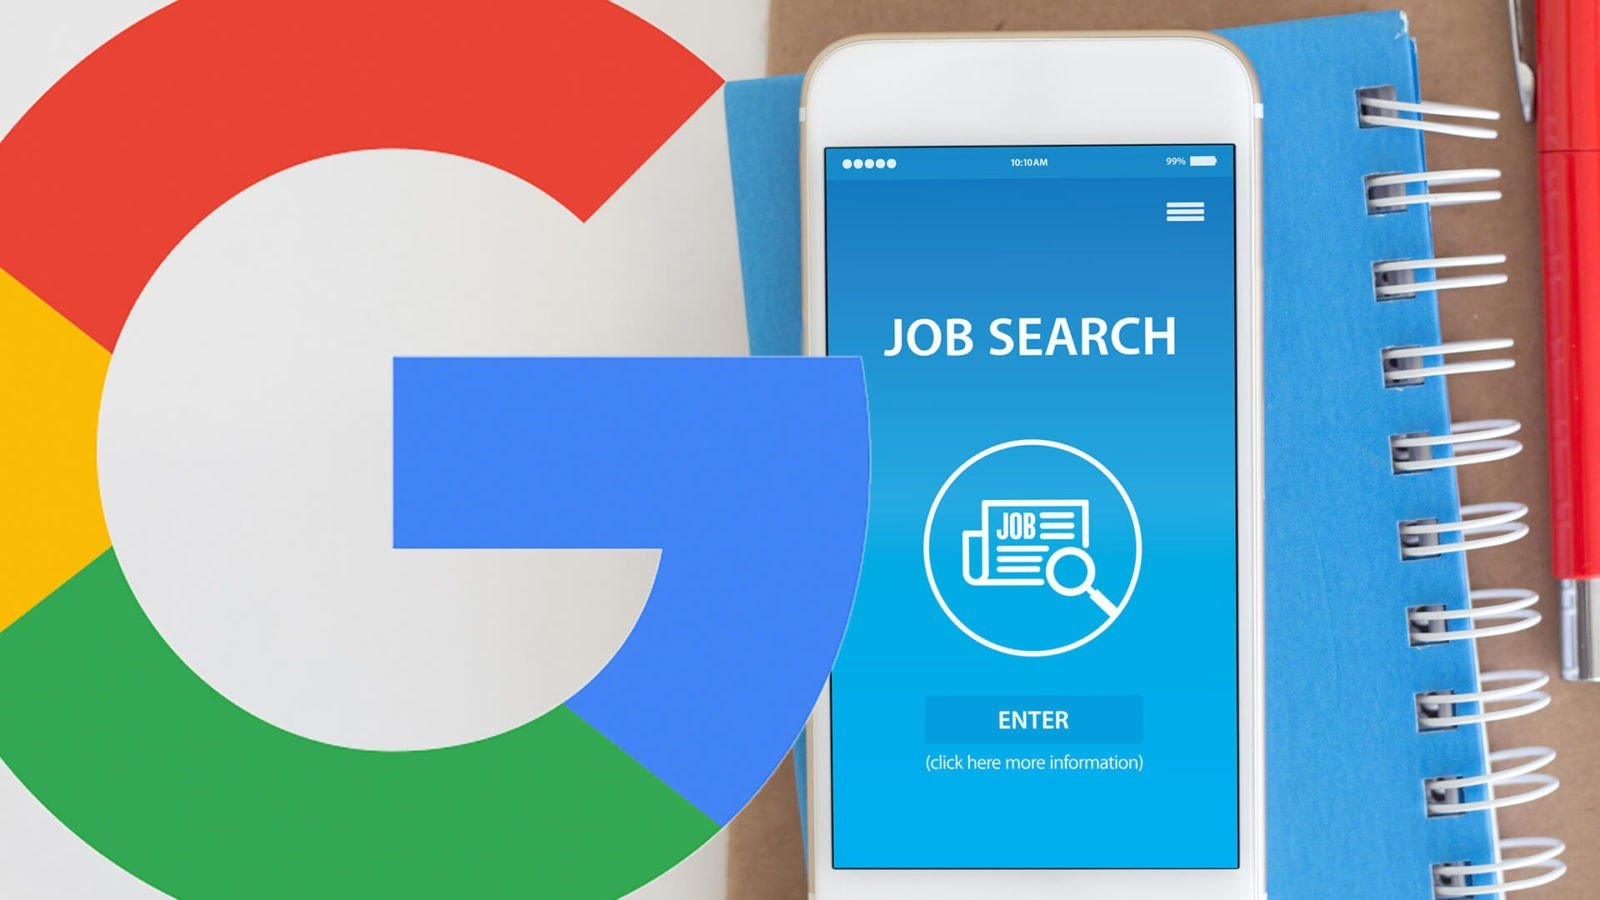 Google publishes new FAQ on job search postings for webmasters